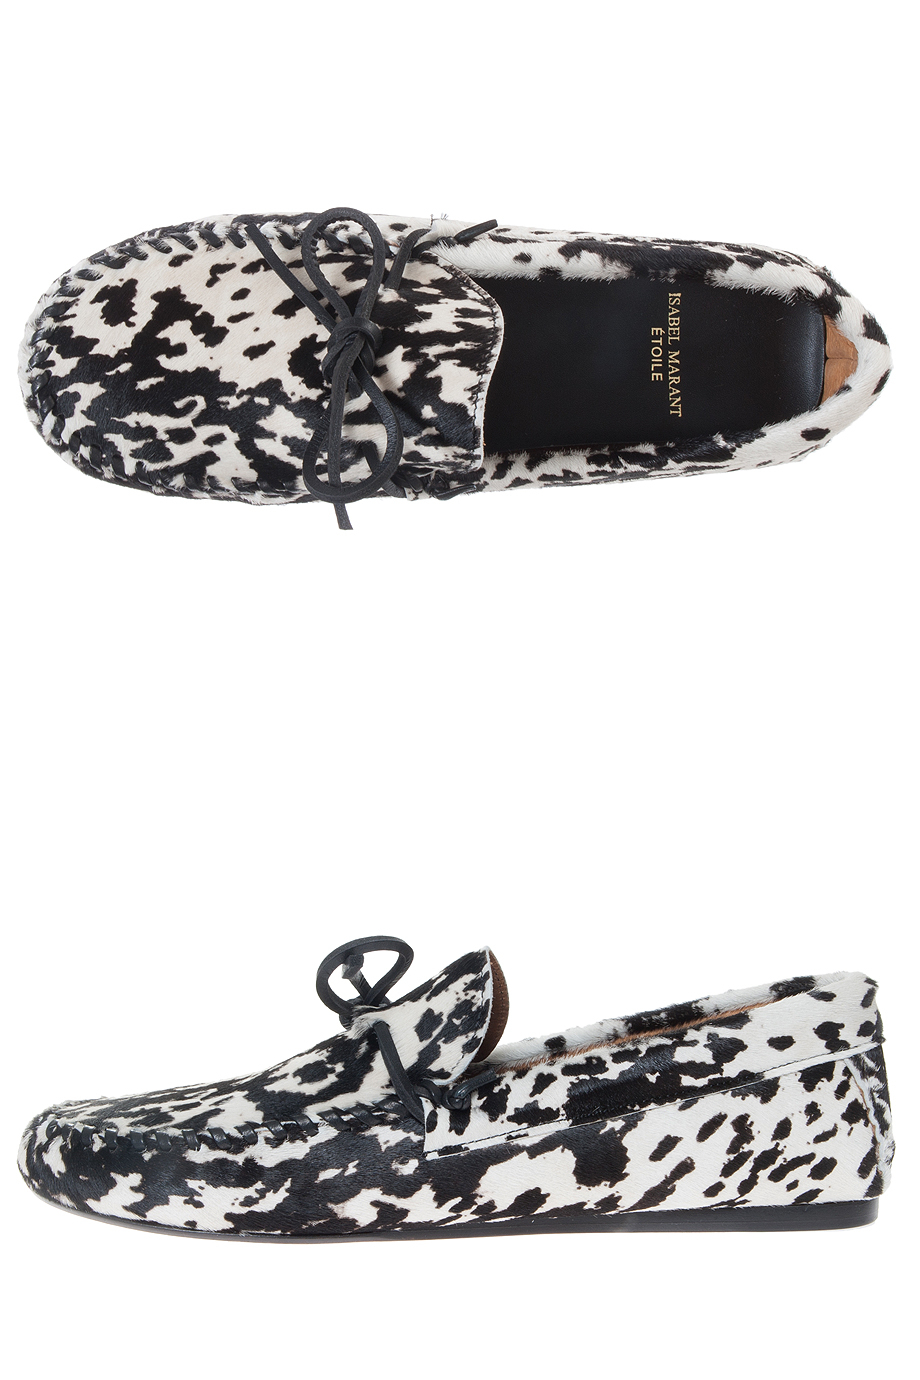 Étoile Isabel Marant Printed Pony Hair Loafers for sale official site browse cheap online VqDxnxx